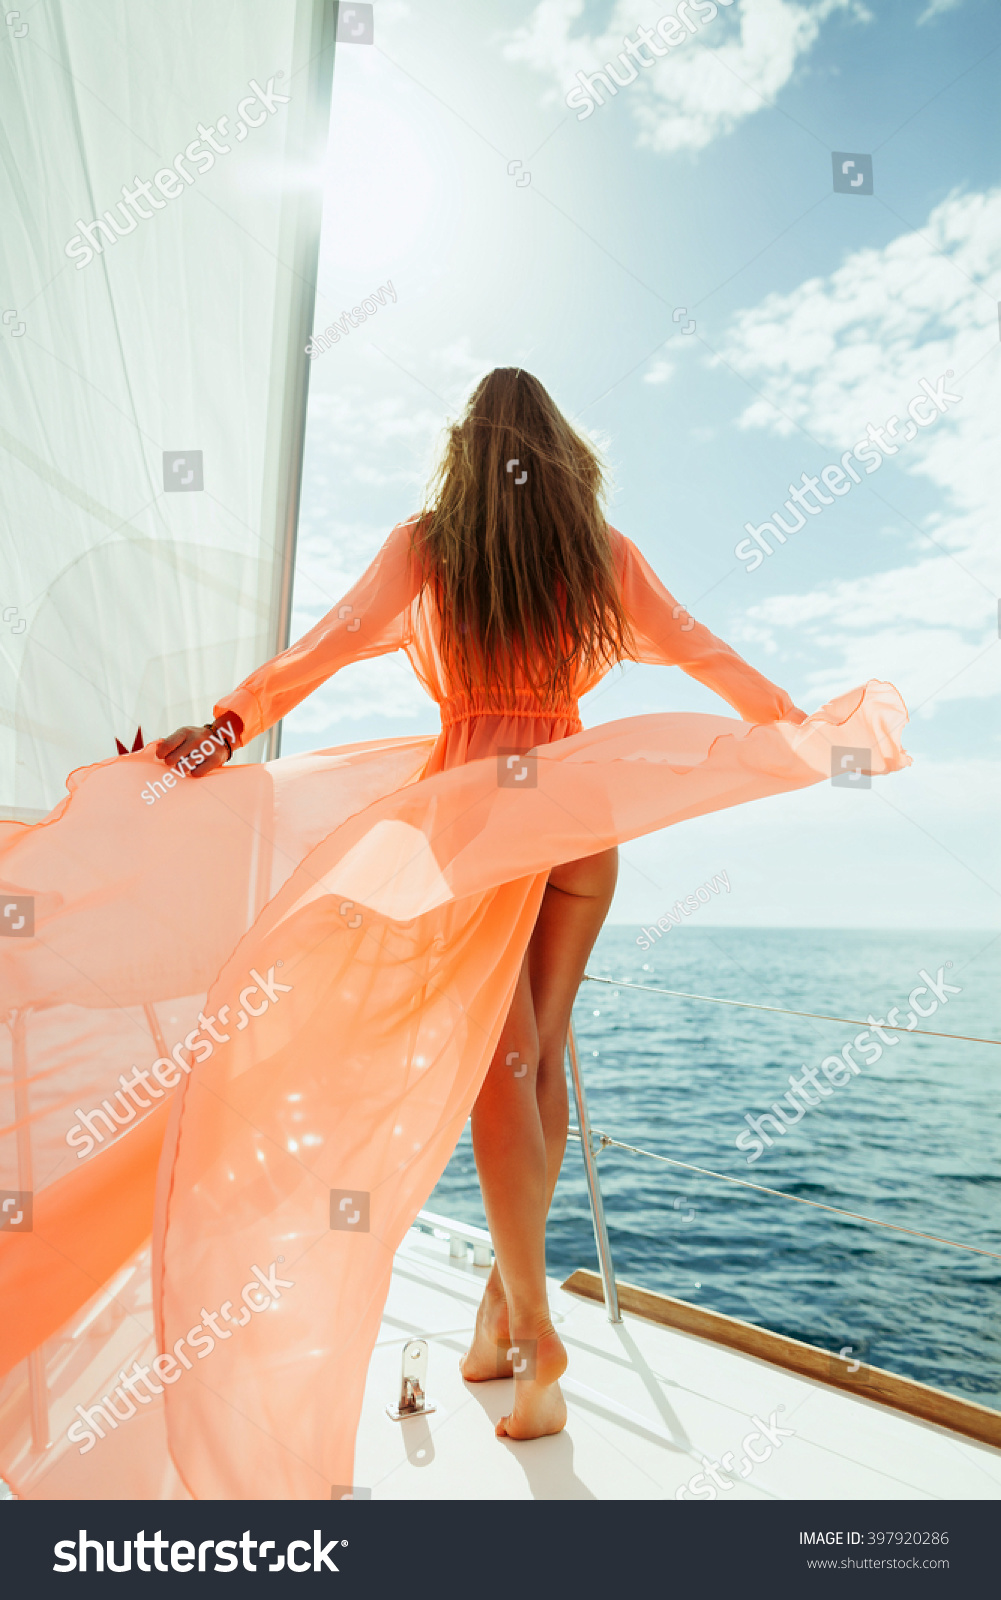 sexy woman in swimwear pareo yacht sea cruise luxury travel vacation with  sunlight and blue sky. Back view